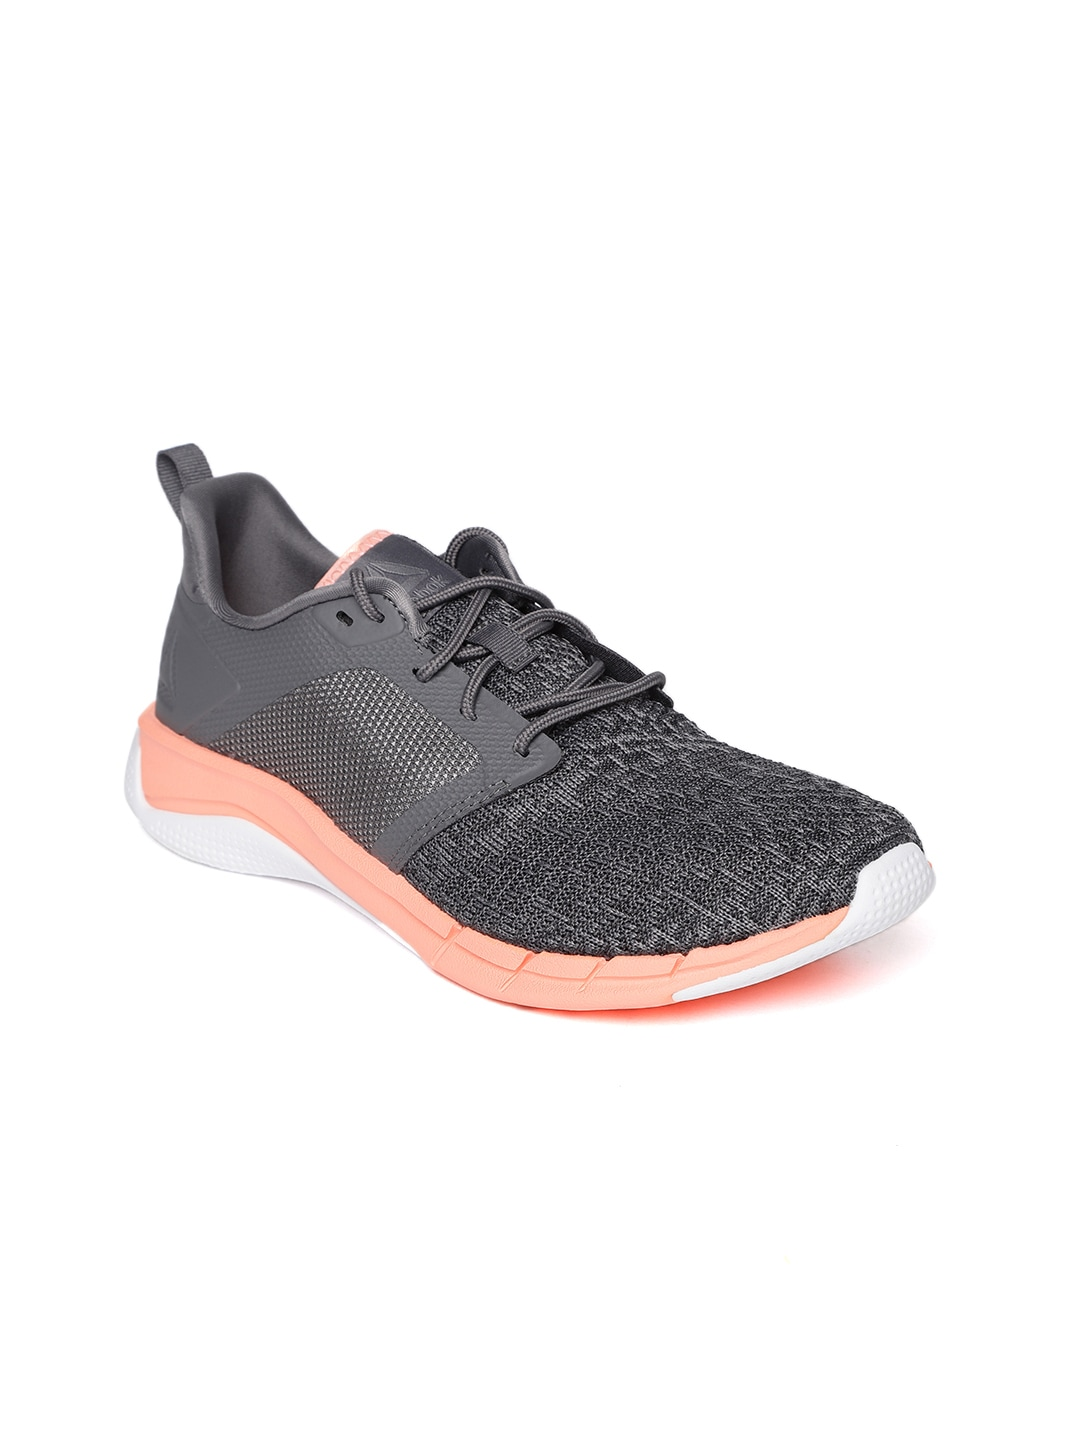 3ca014e4c77d Reebok Shoes - Buy Reebok Shoes For Men   Women Online